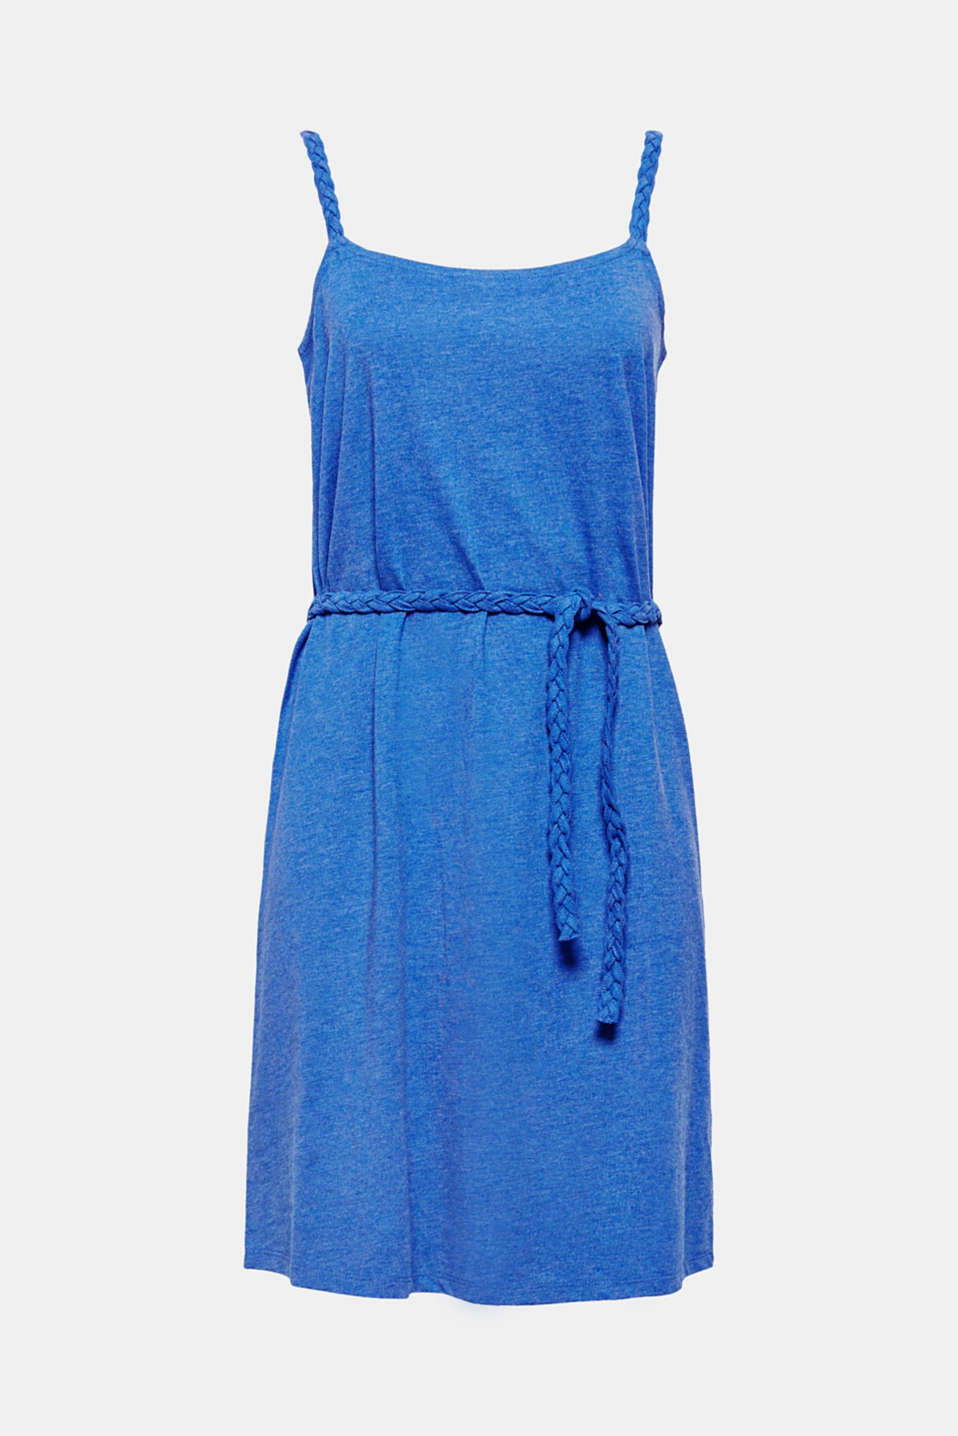 Your summery favourite piece! The lightweight jersey fabric, braided straps and belt in a braided look give this summer dress a smart kick.